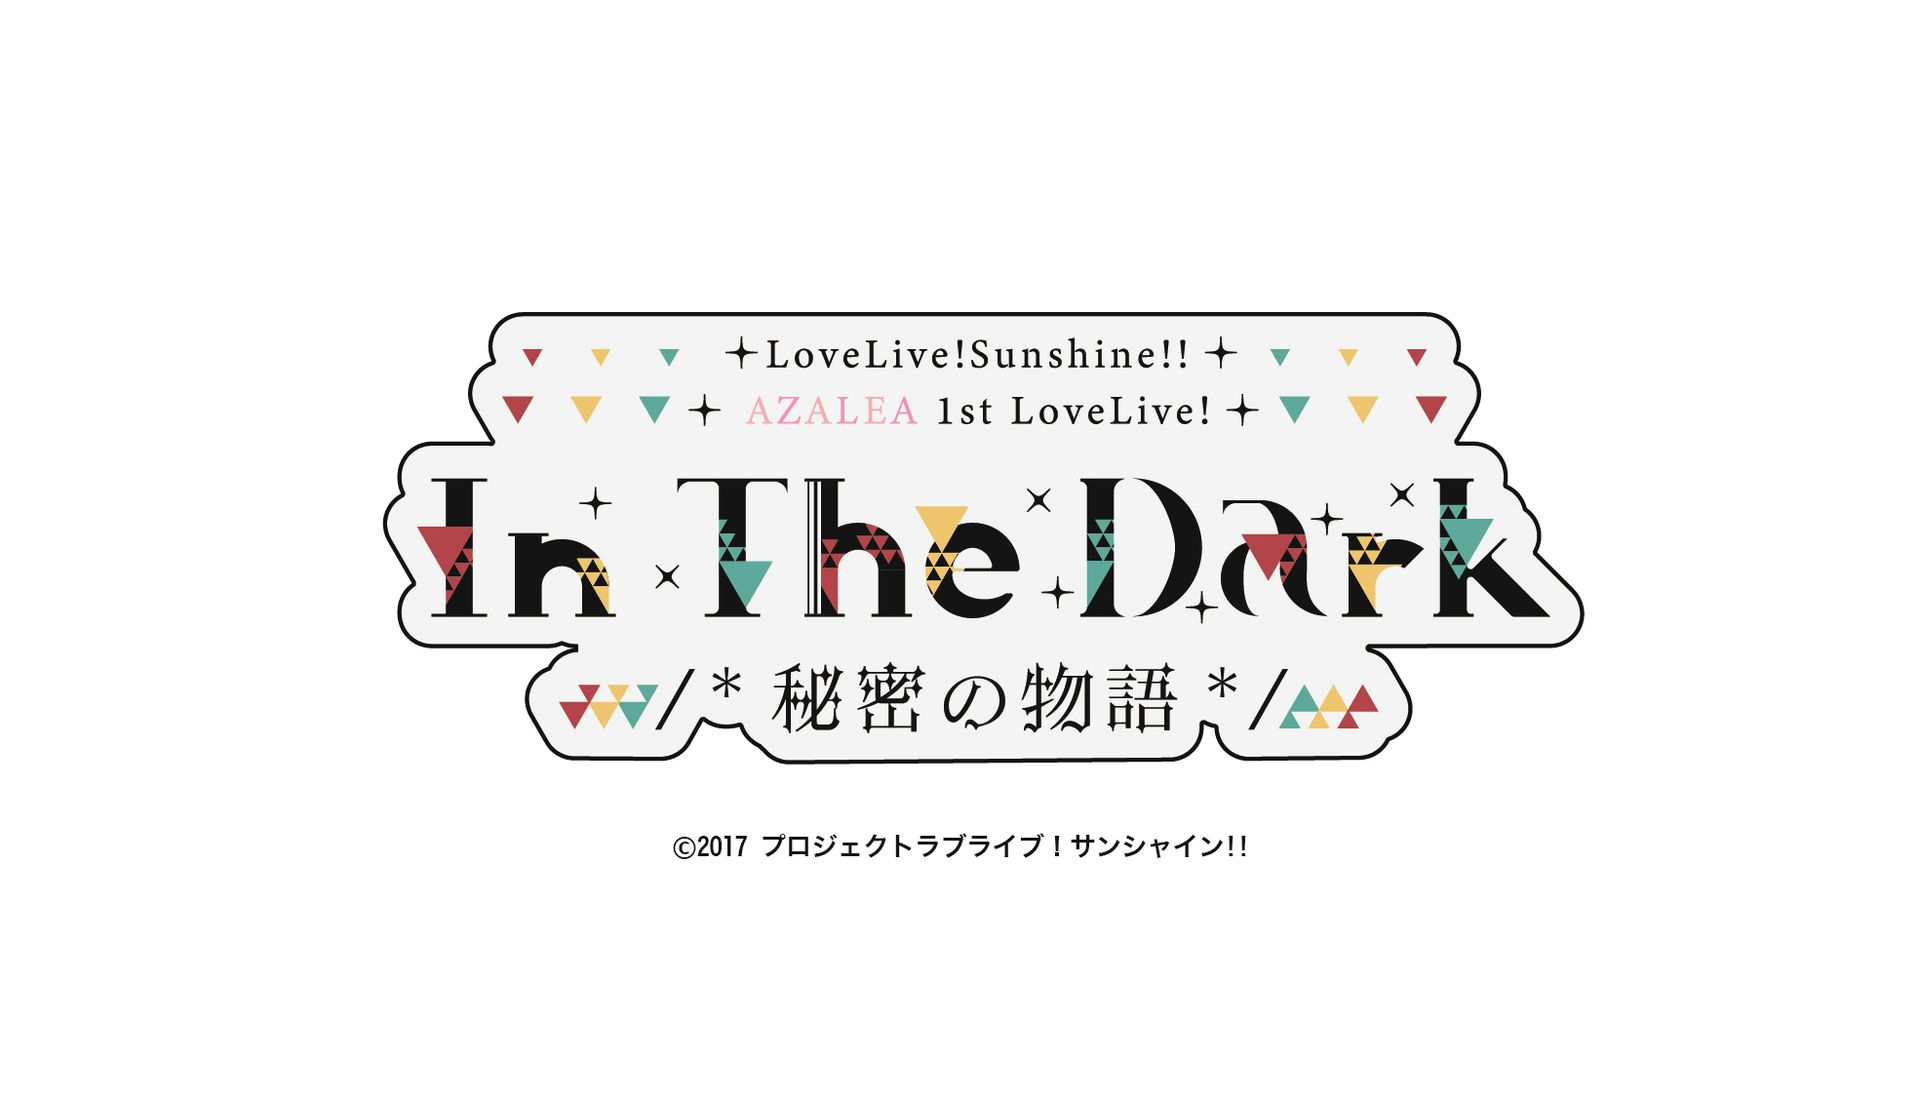 [Streaming+] Love Live! Sunshine!! AZALEA 1st LoveLive! ~In The Dark /*Himitsu no Story*/~Day.2 【with audio commentary by AZALEA】 [Go To Event]